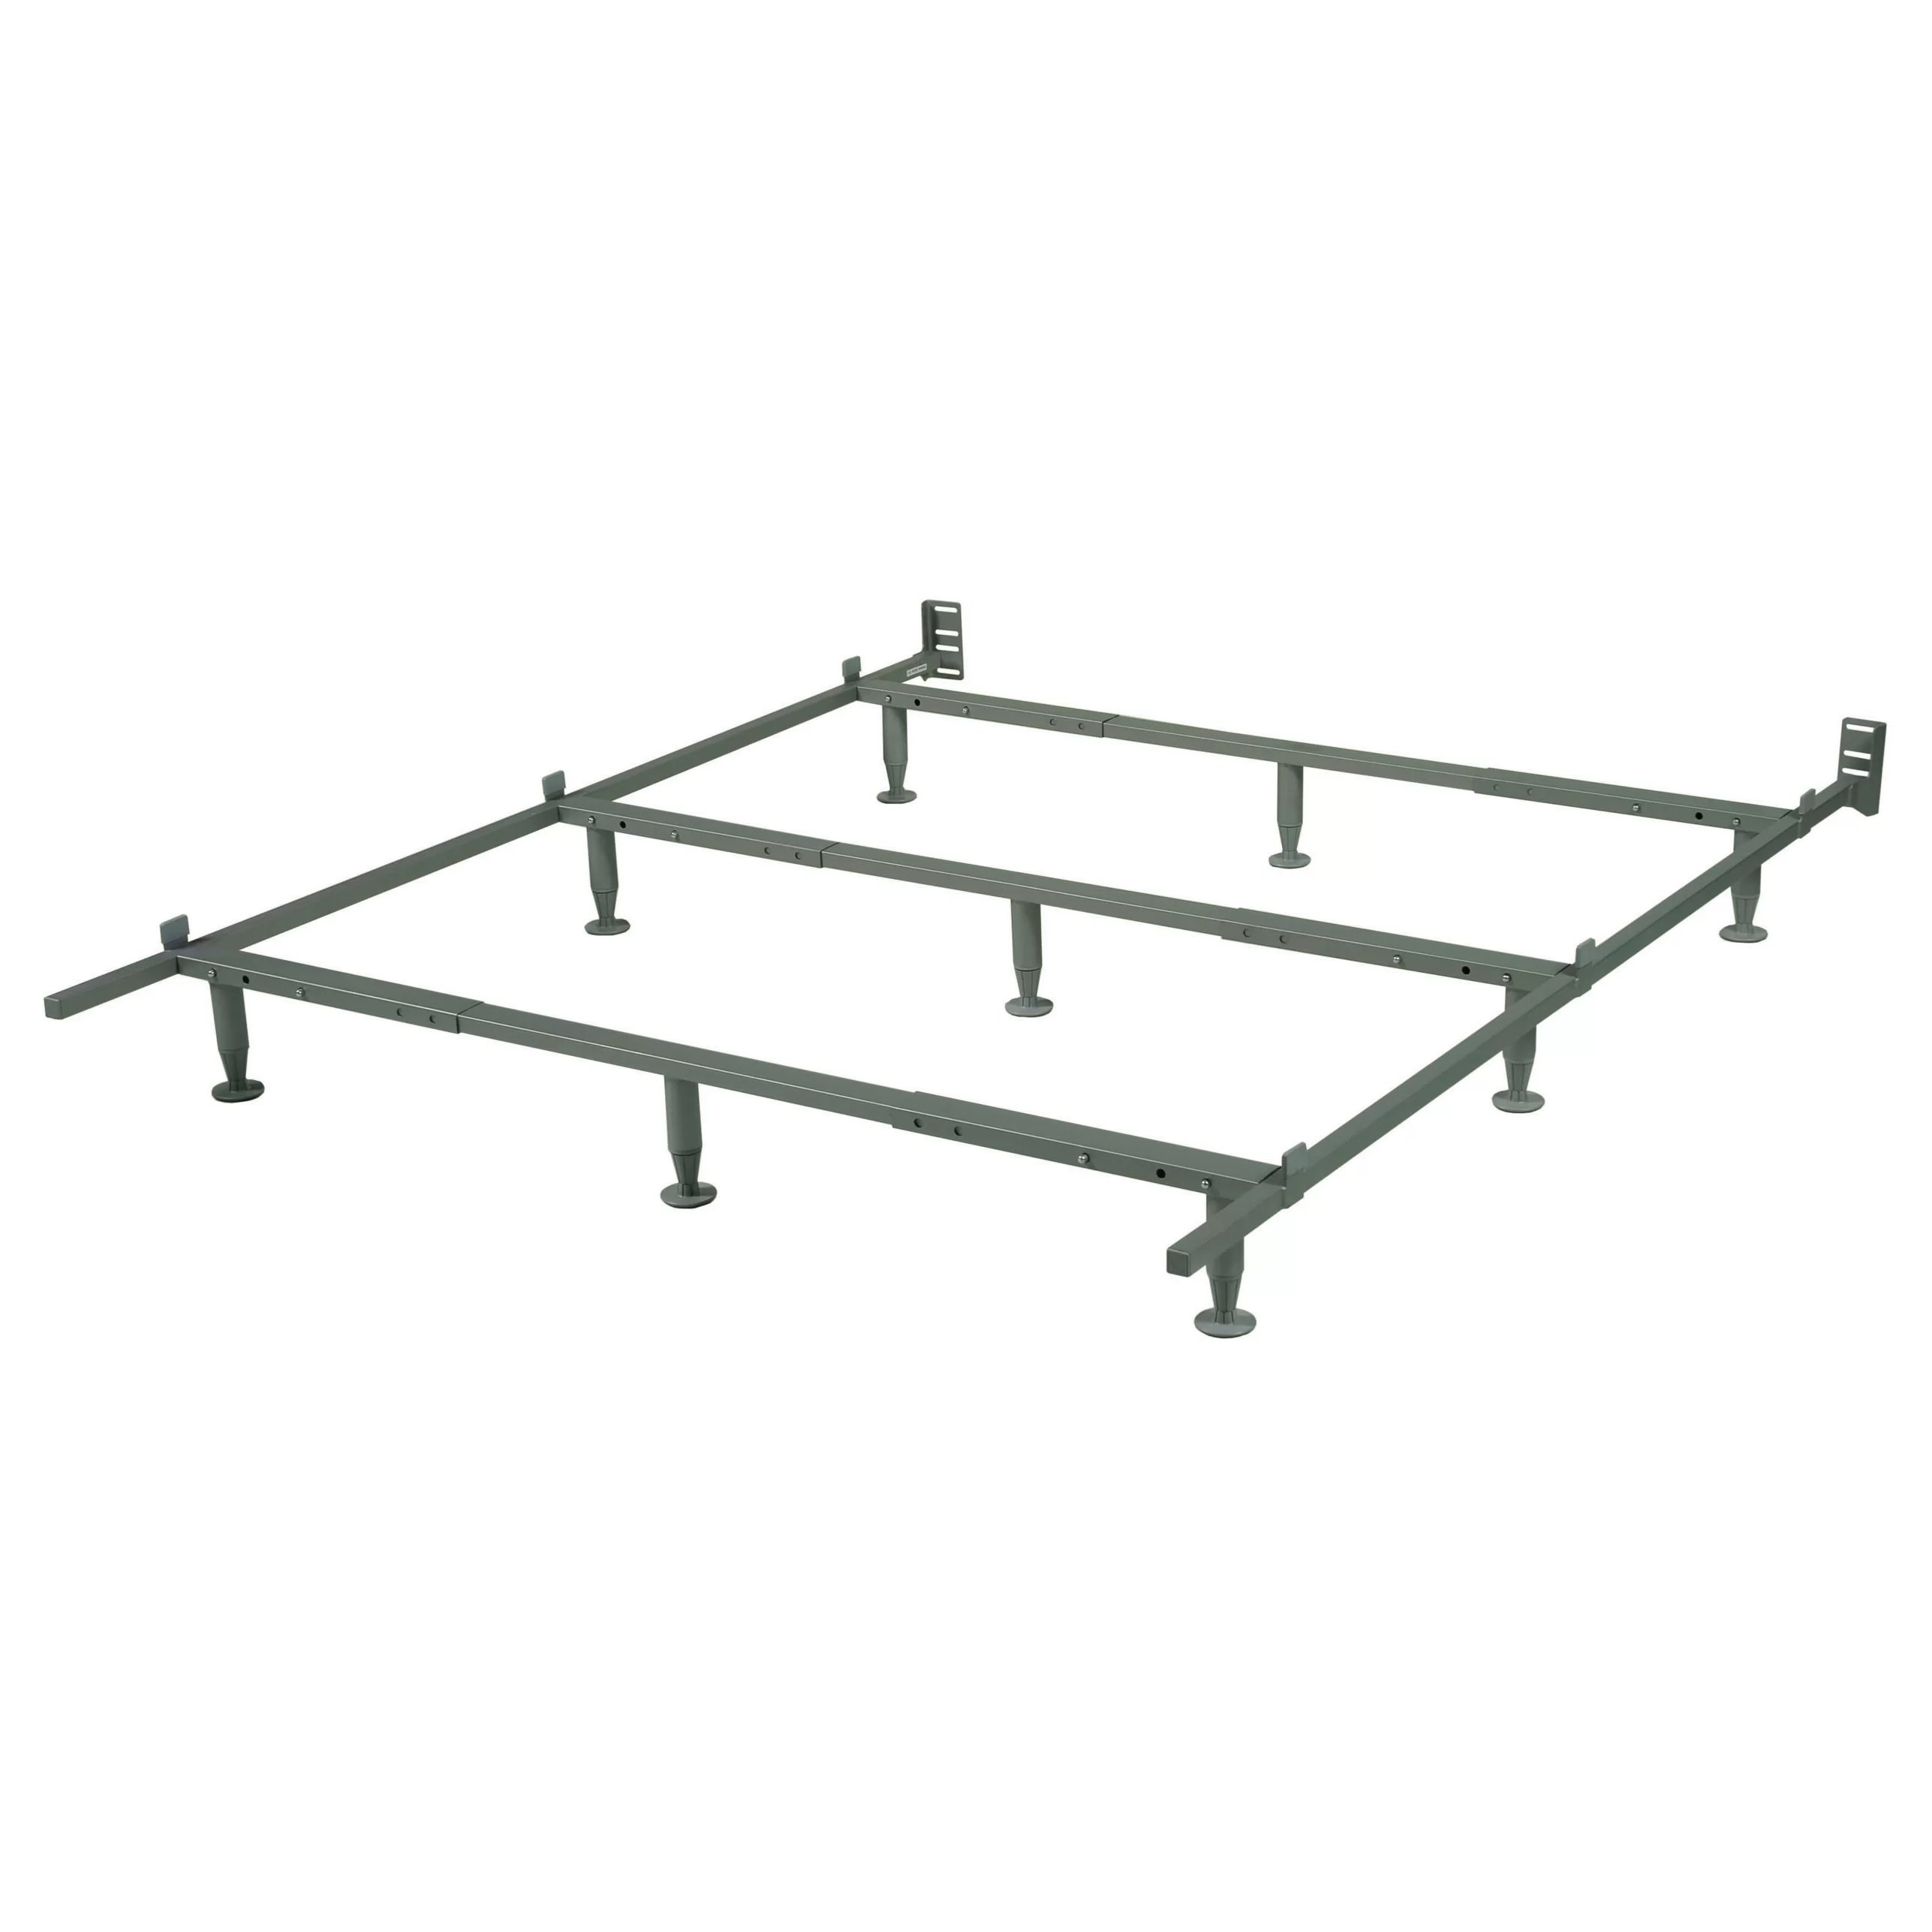 Mantua Mfg Co Ultimate Bed Frame For All Size Beds